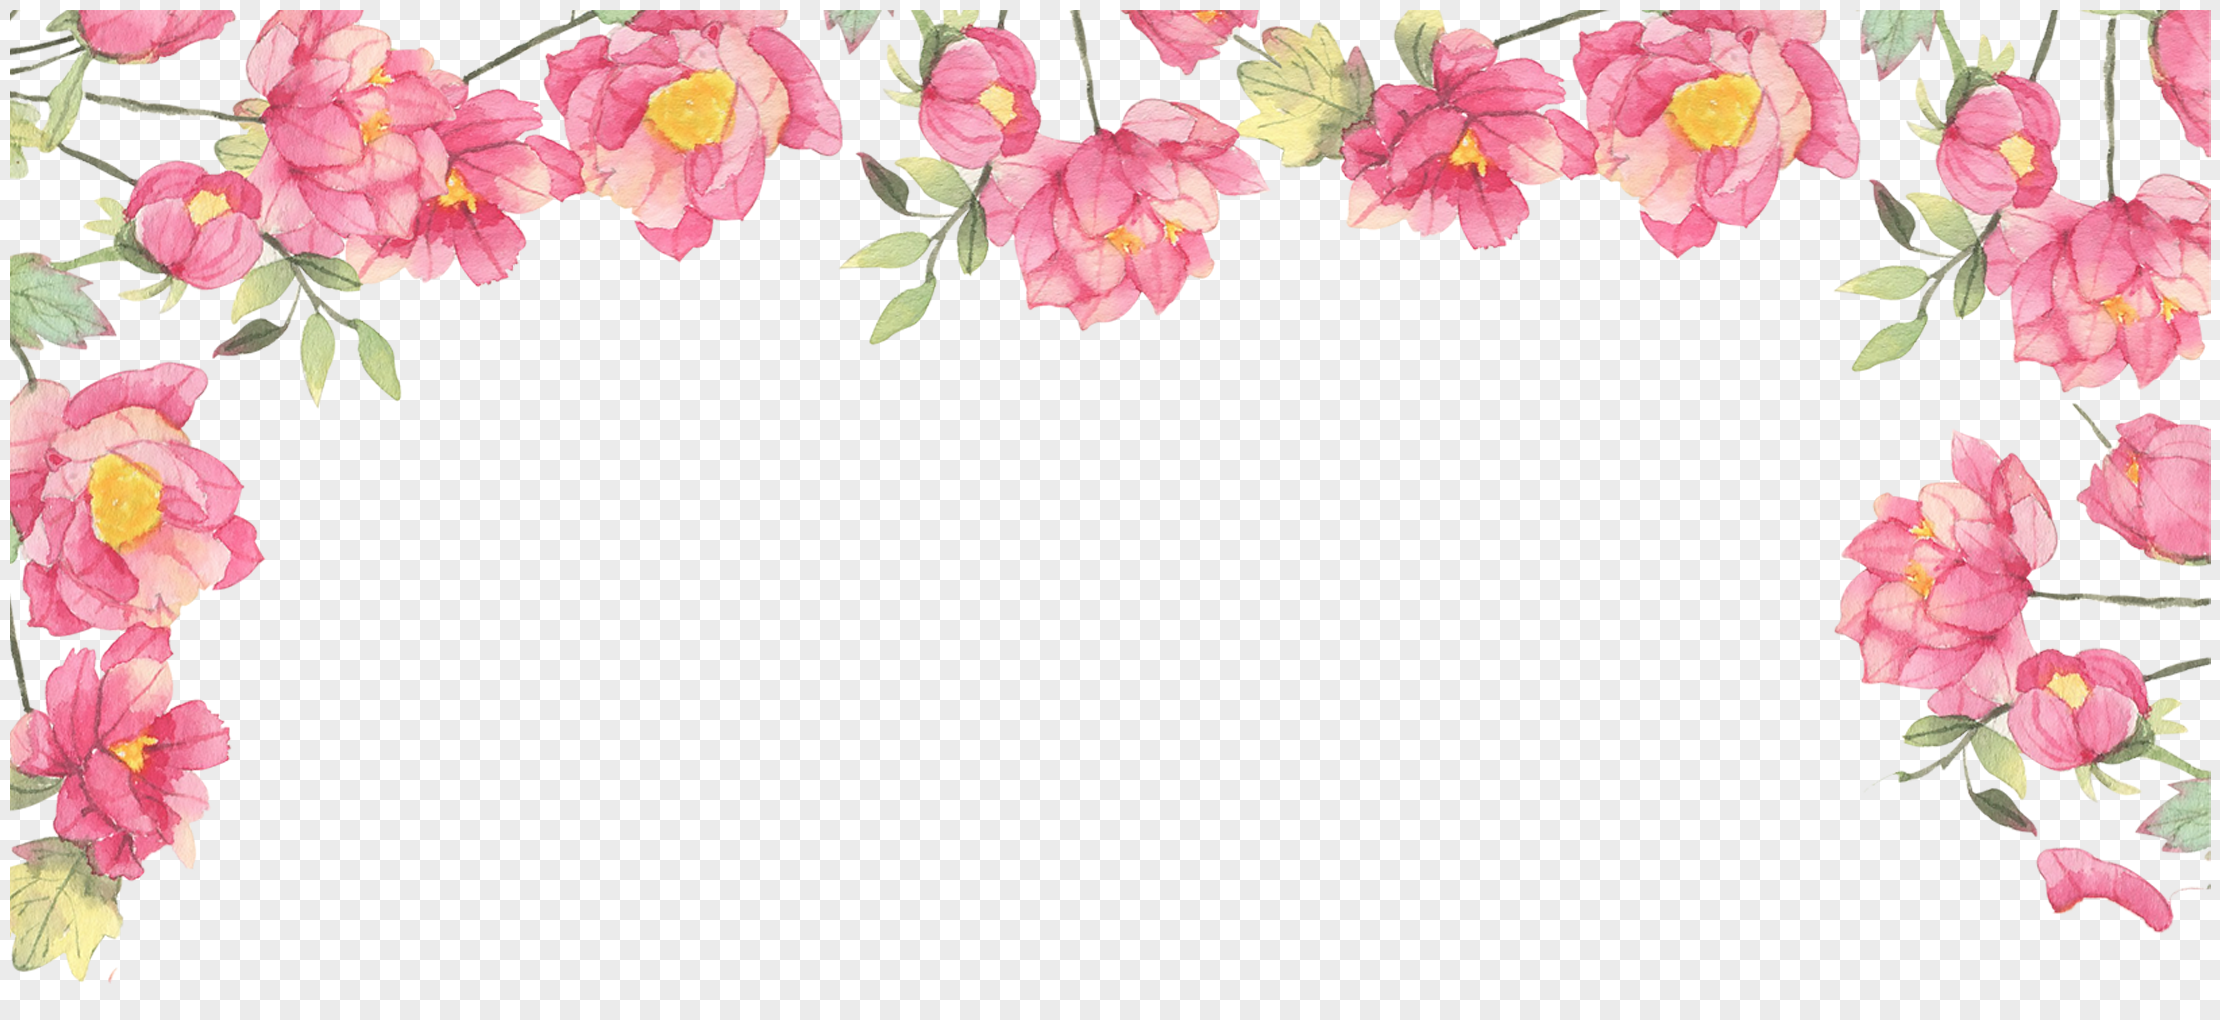 floral border background png image picture free download